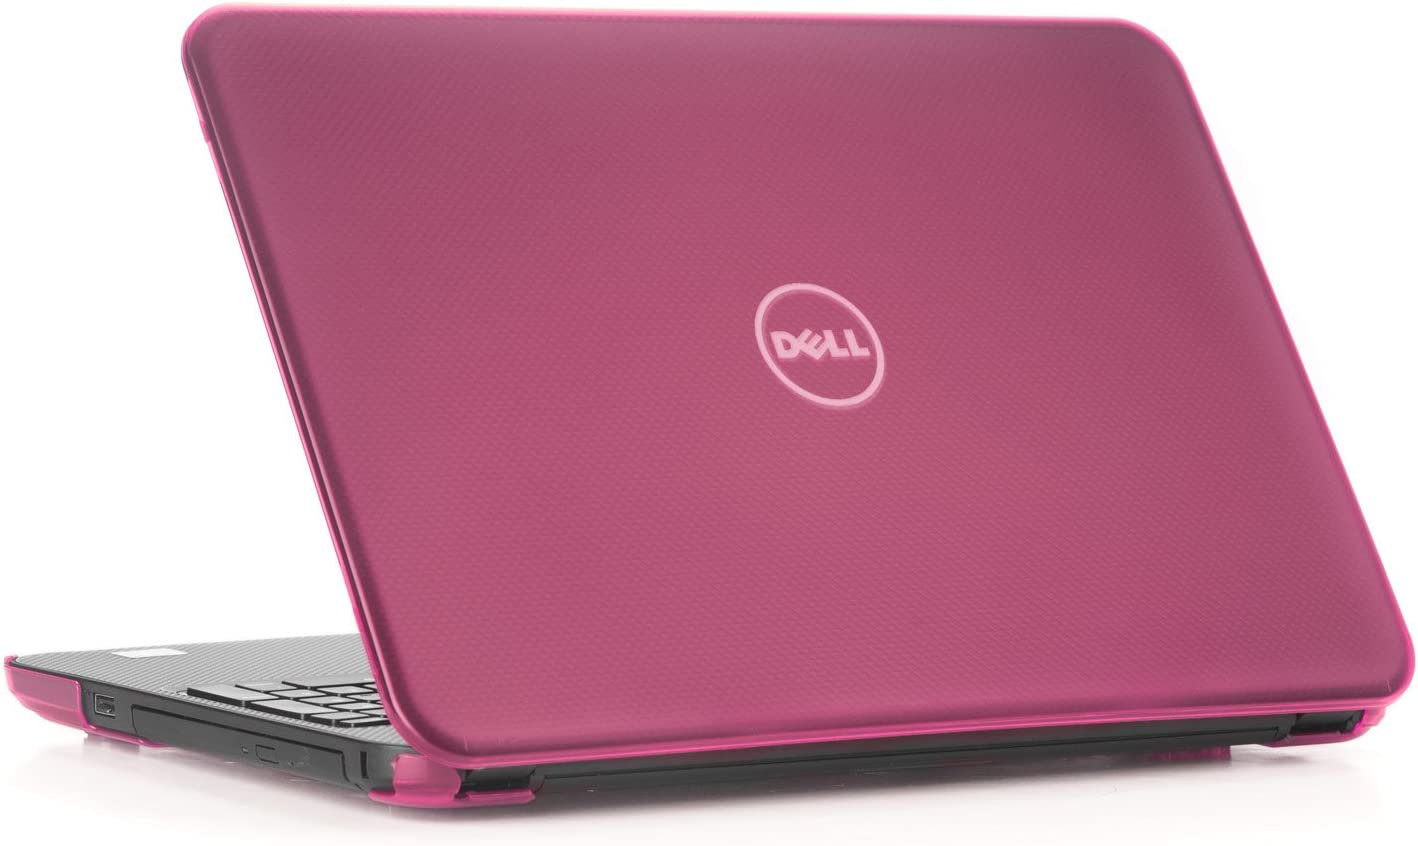 "mCover Hard Shell Case for 15.6"" Dell Inspiron 15 5565/5567 Laptop (NOT Compatible with Other Dell Inspiron 5000 Series Models) (Pink)"